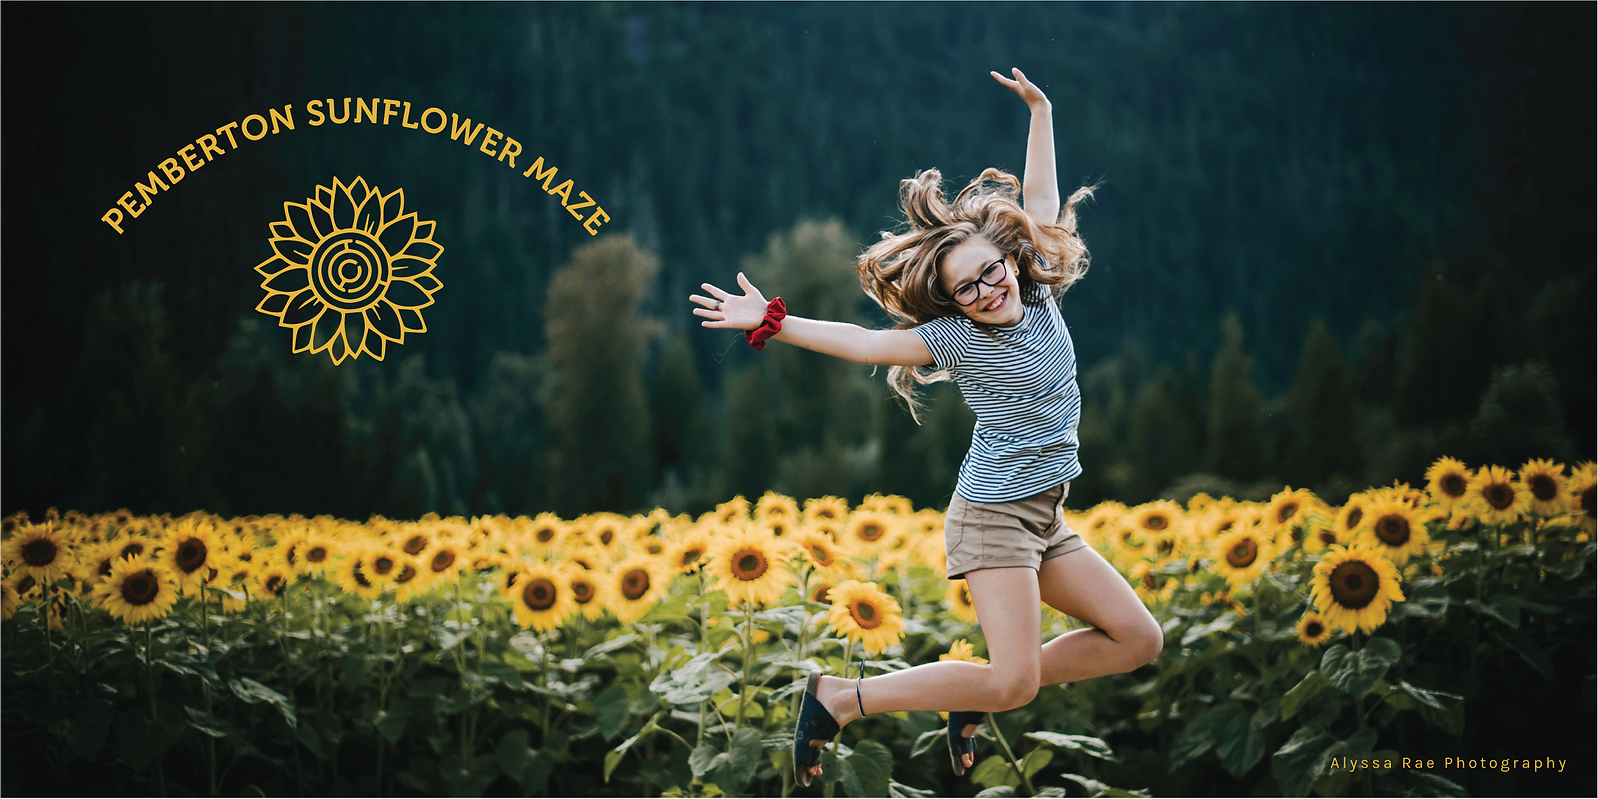 Pemberton Sunflower Maze_ShowPass_Banner